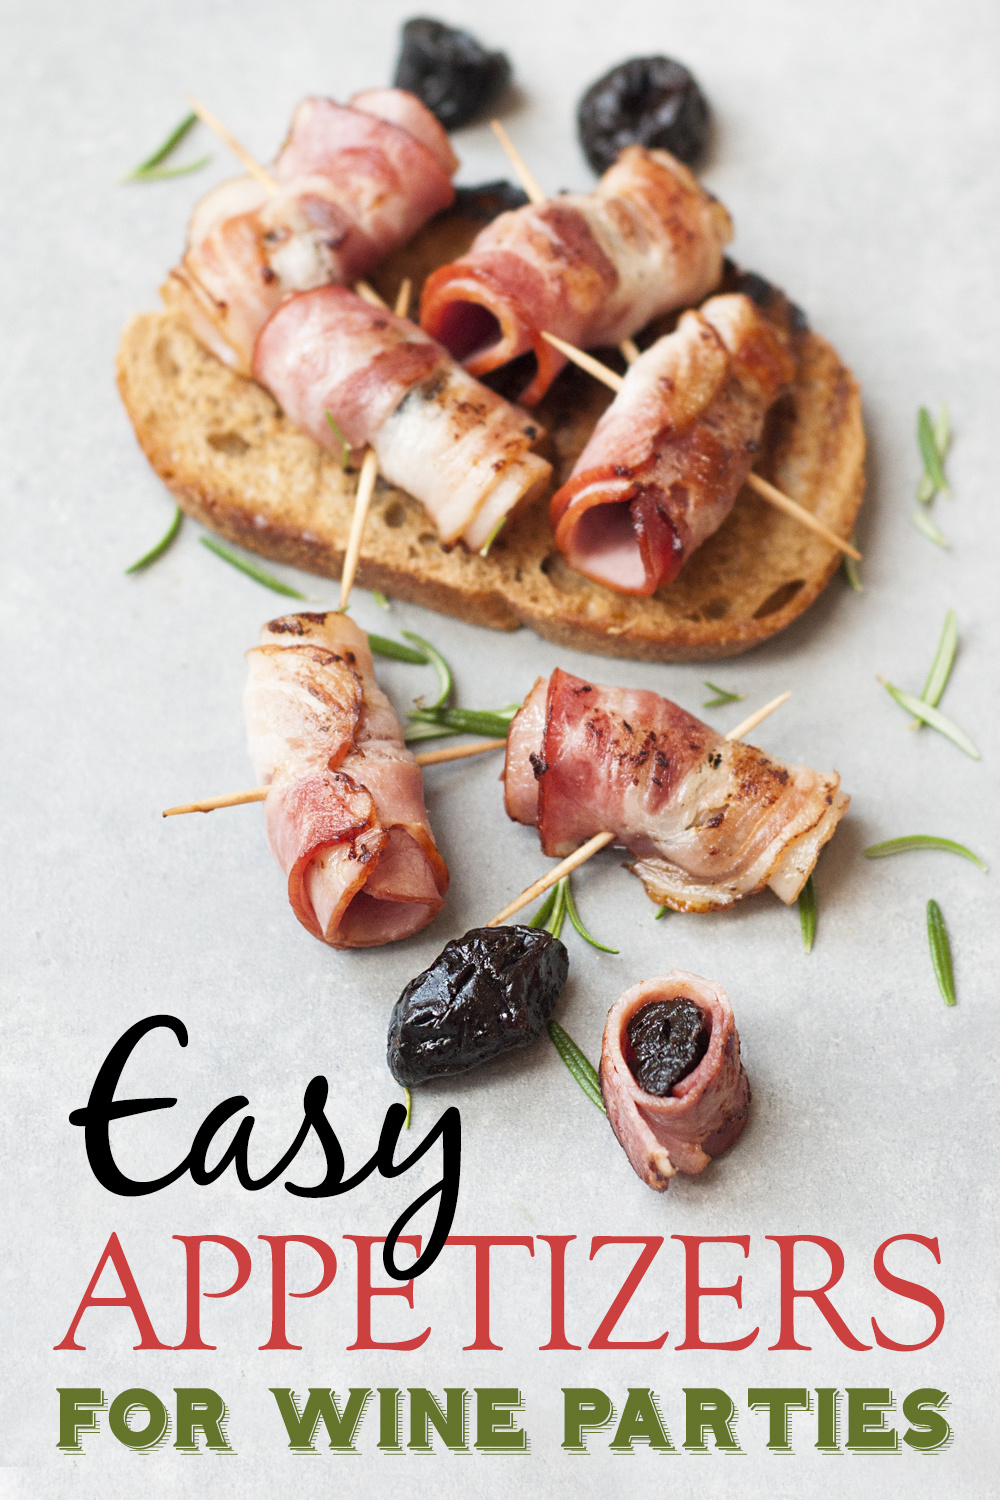 Use your knowledge of wine pairings to come up with some of the best easy appetizers for wine during your next party. Wine Parties | Easy Appetizers | Appetizer Recipes | Holiday Appetizers | Appetizers Recipes for Parties #parties #recipes via @amybarseghian